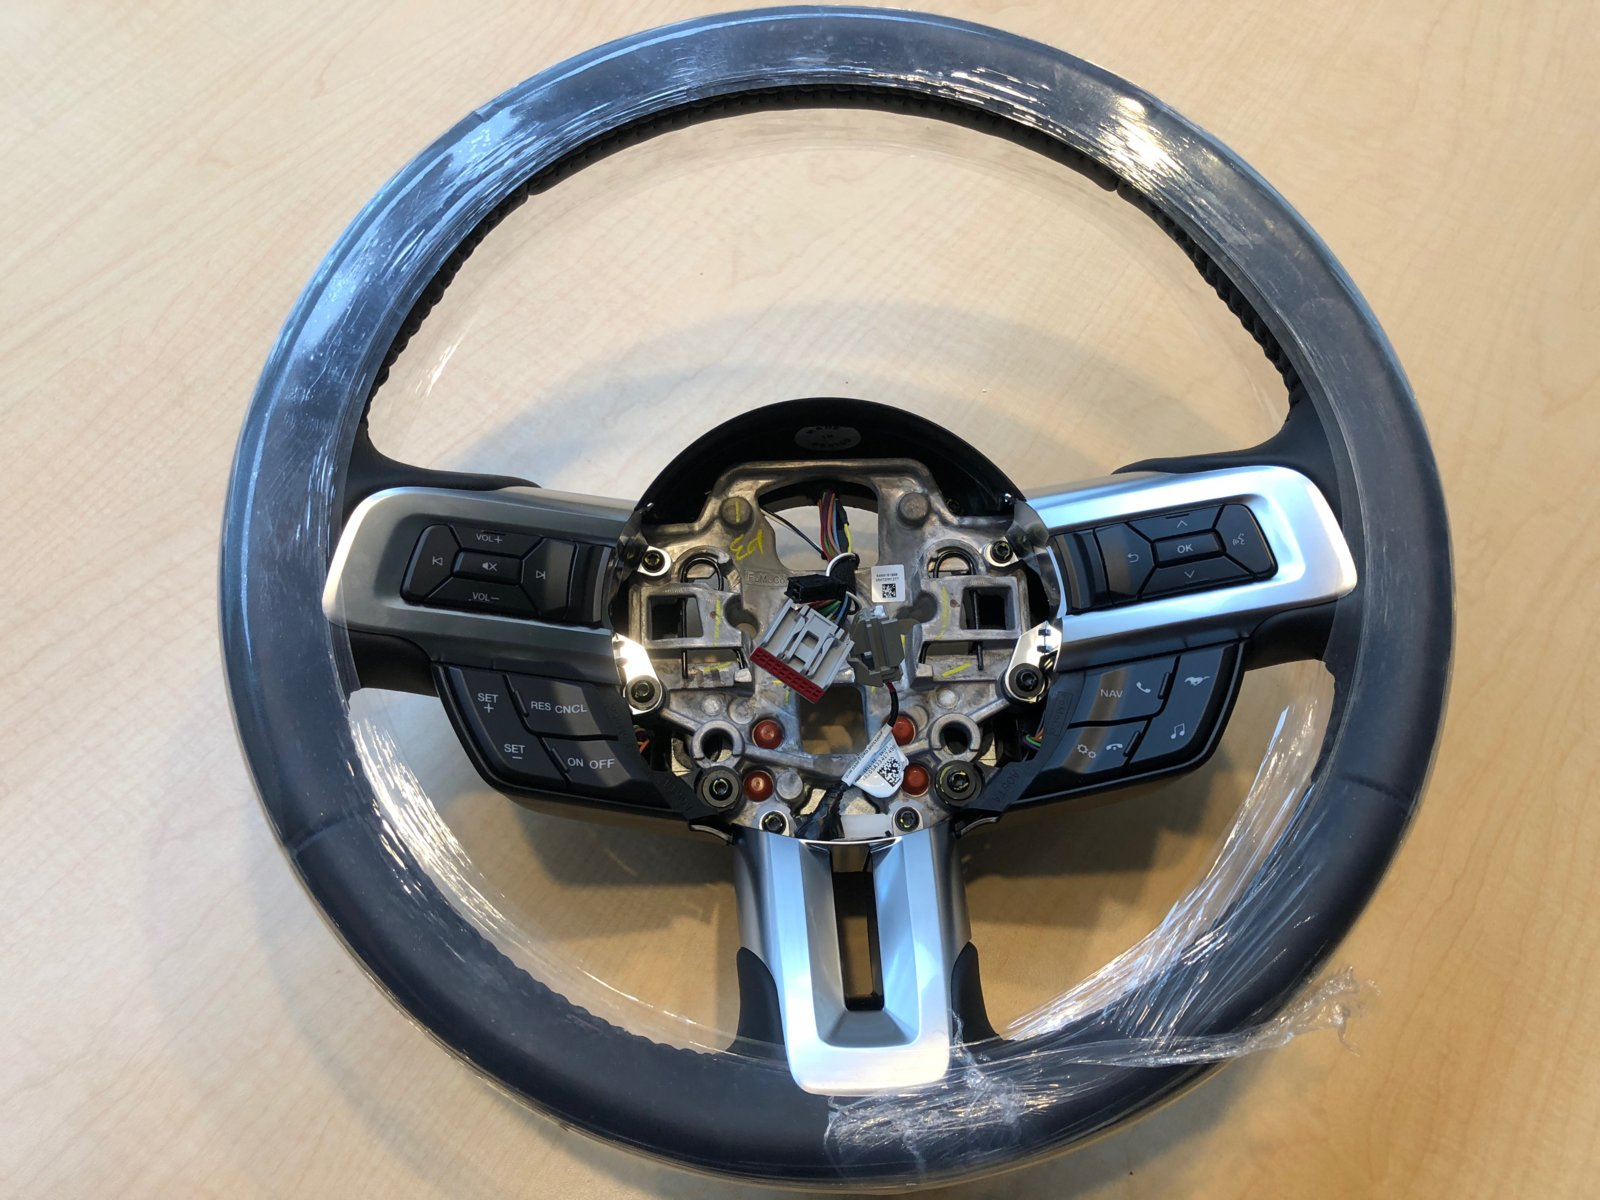 Miraculous Heated Steering Wheel Retrofit For 15 17 Completed Plus 18S And Up Wiring Cloud Eachirenstrafr09Org